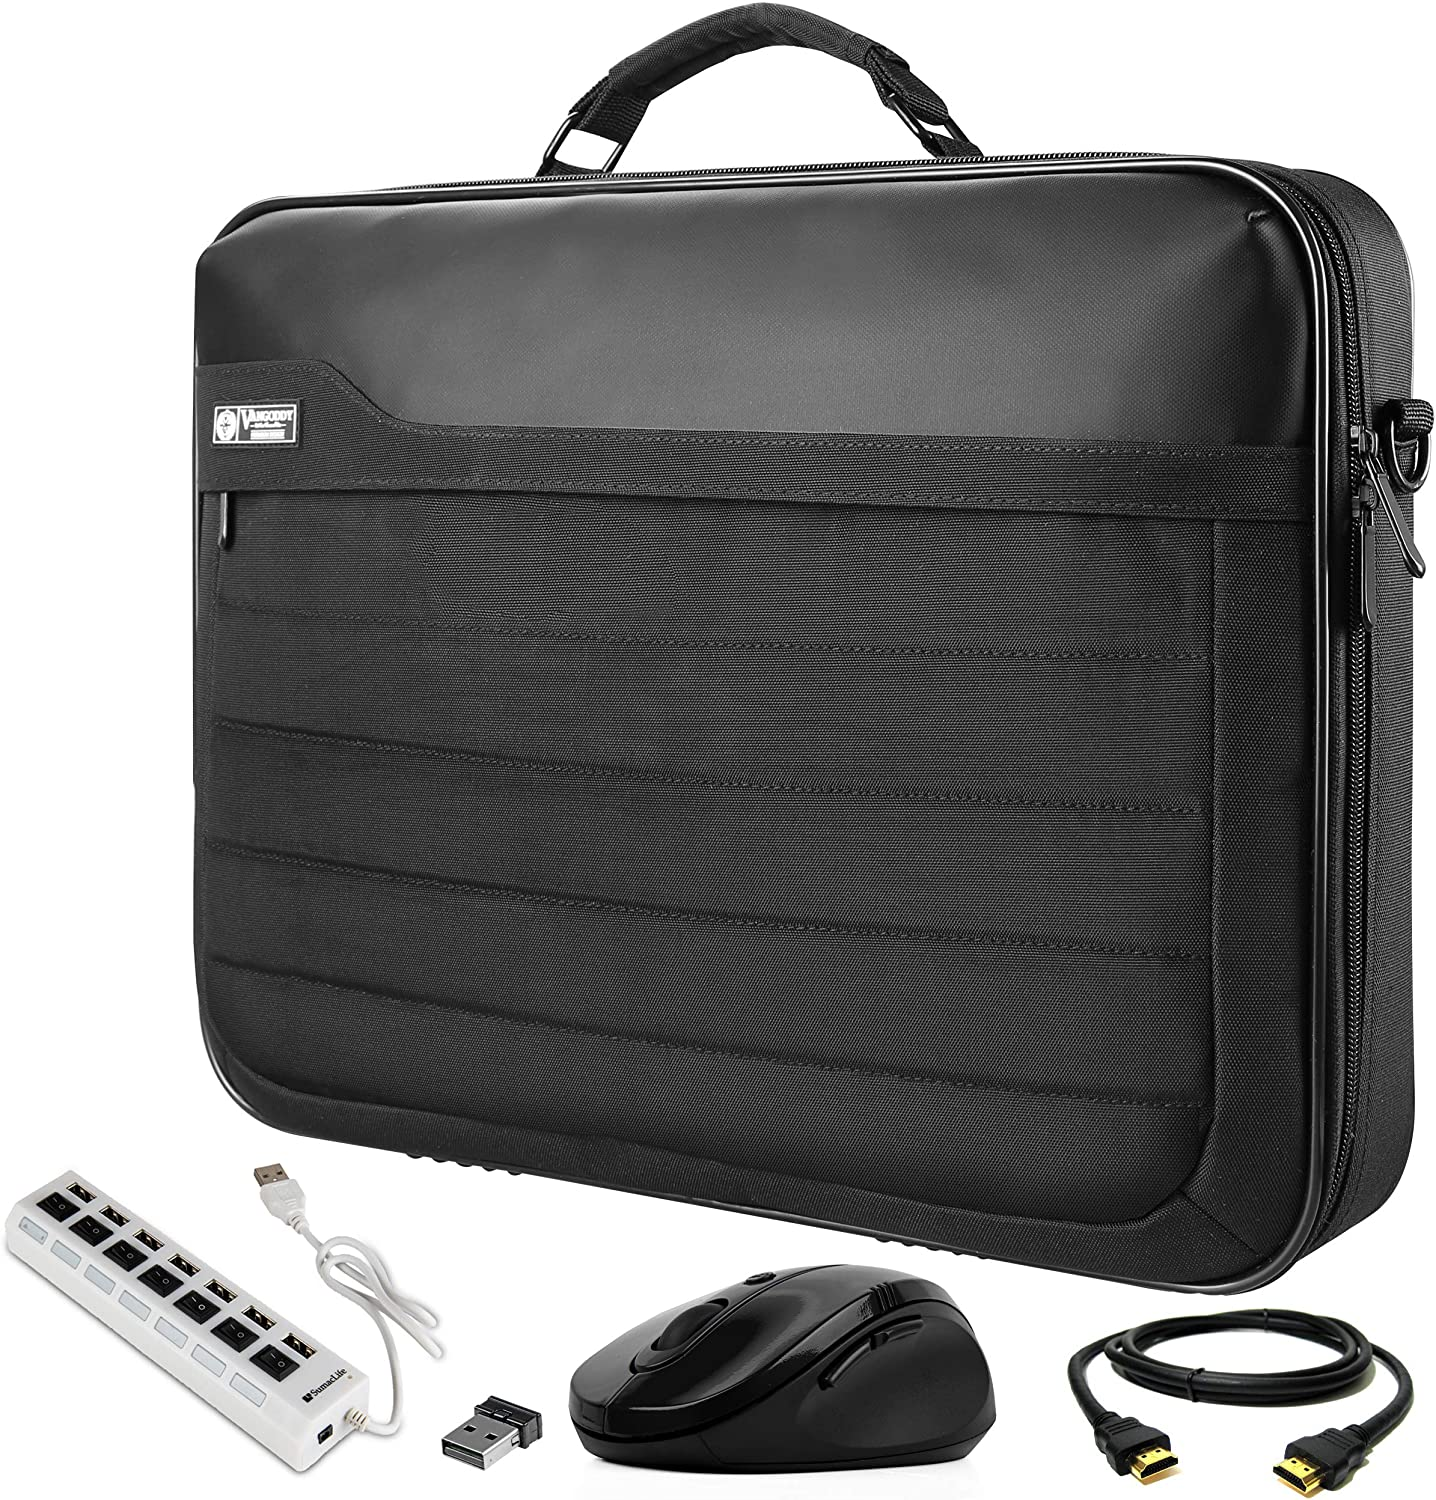 Mouse VanGoddy Briefcase Bag 17.3 inch with HDMI Cable and USB Hub Fit for AOC 17-Inch Portable Monitor e1759Fwu